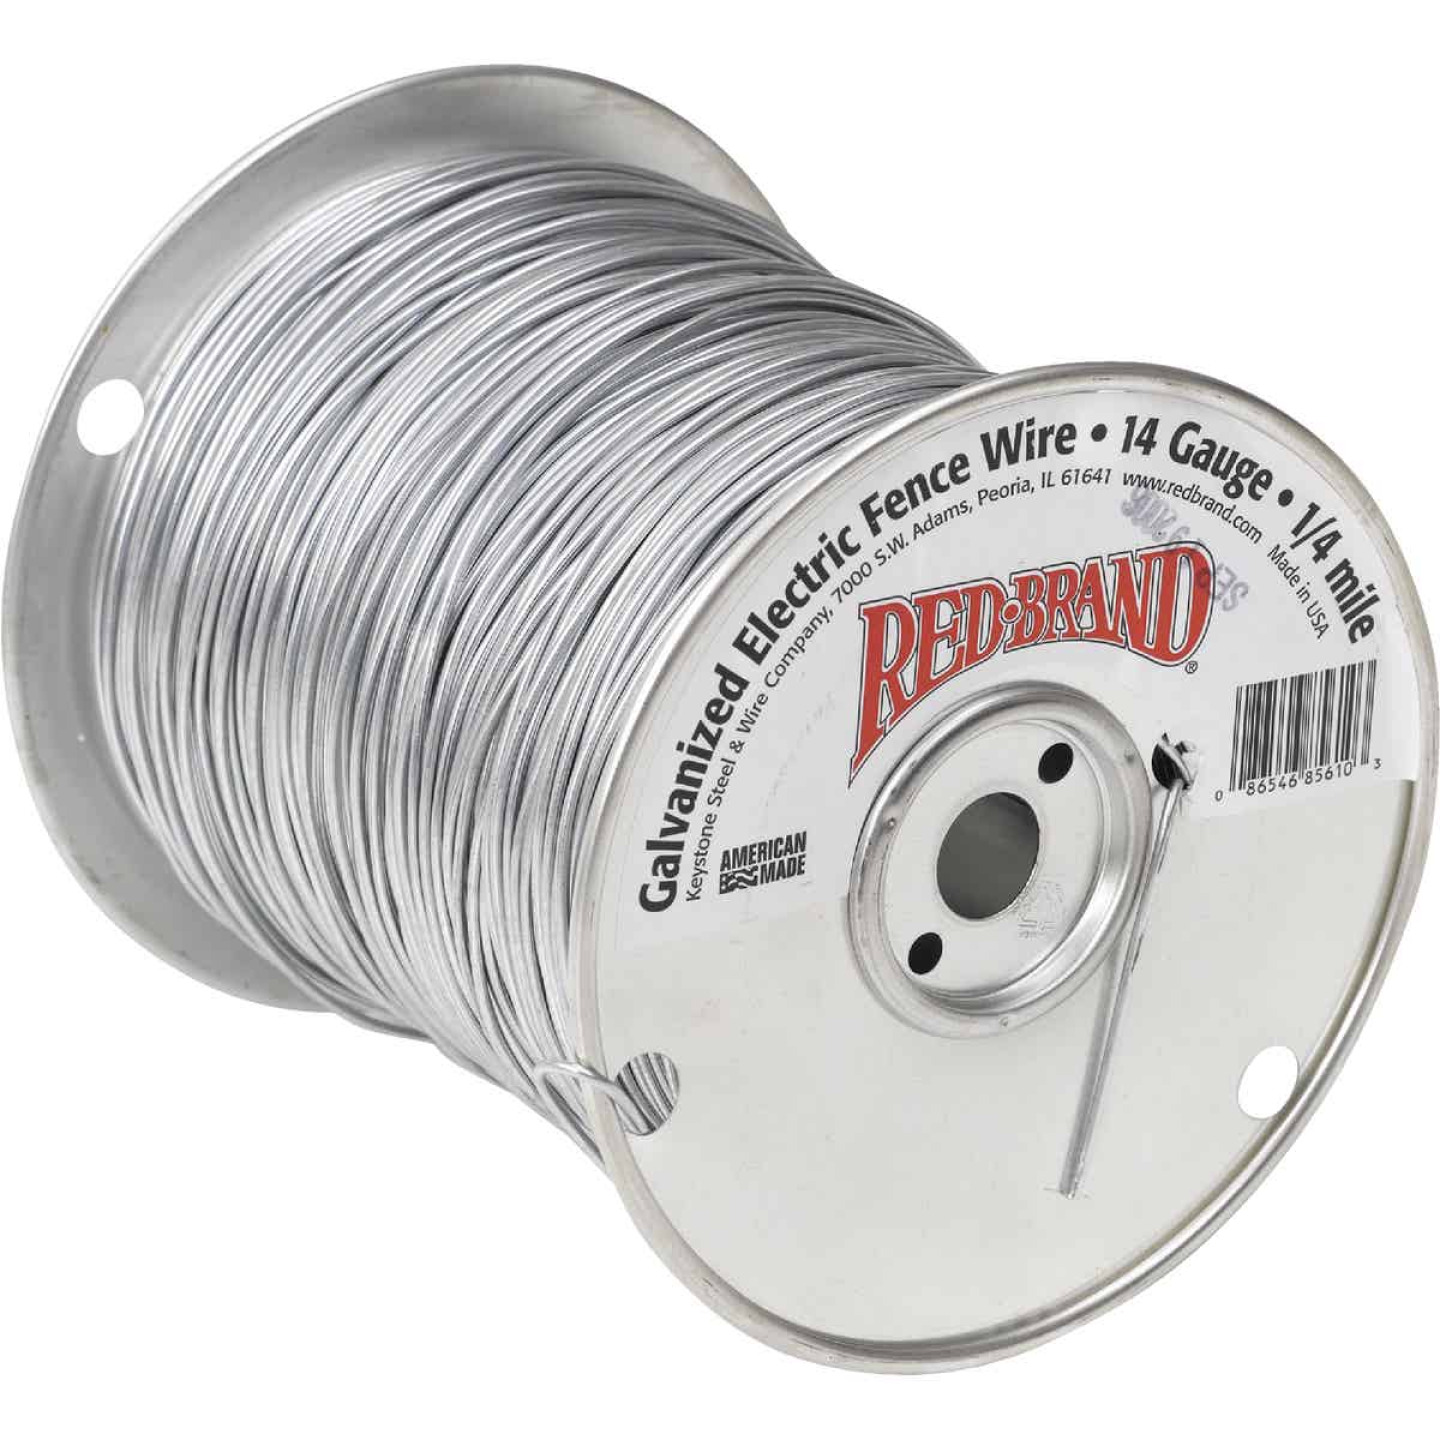 Keystone Red Brand 1/4-Mile x 14 Ga. Steel Electric Fence Wire Image 1